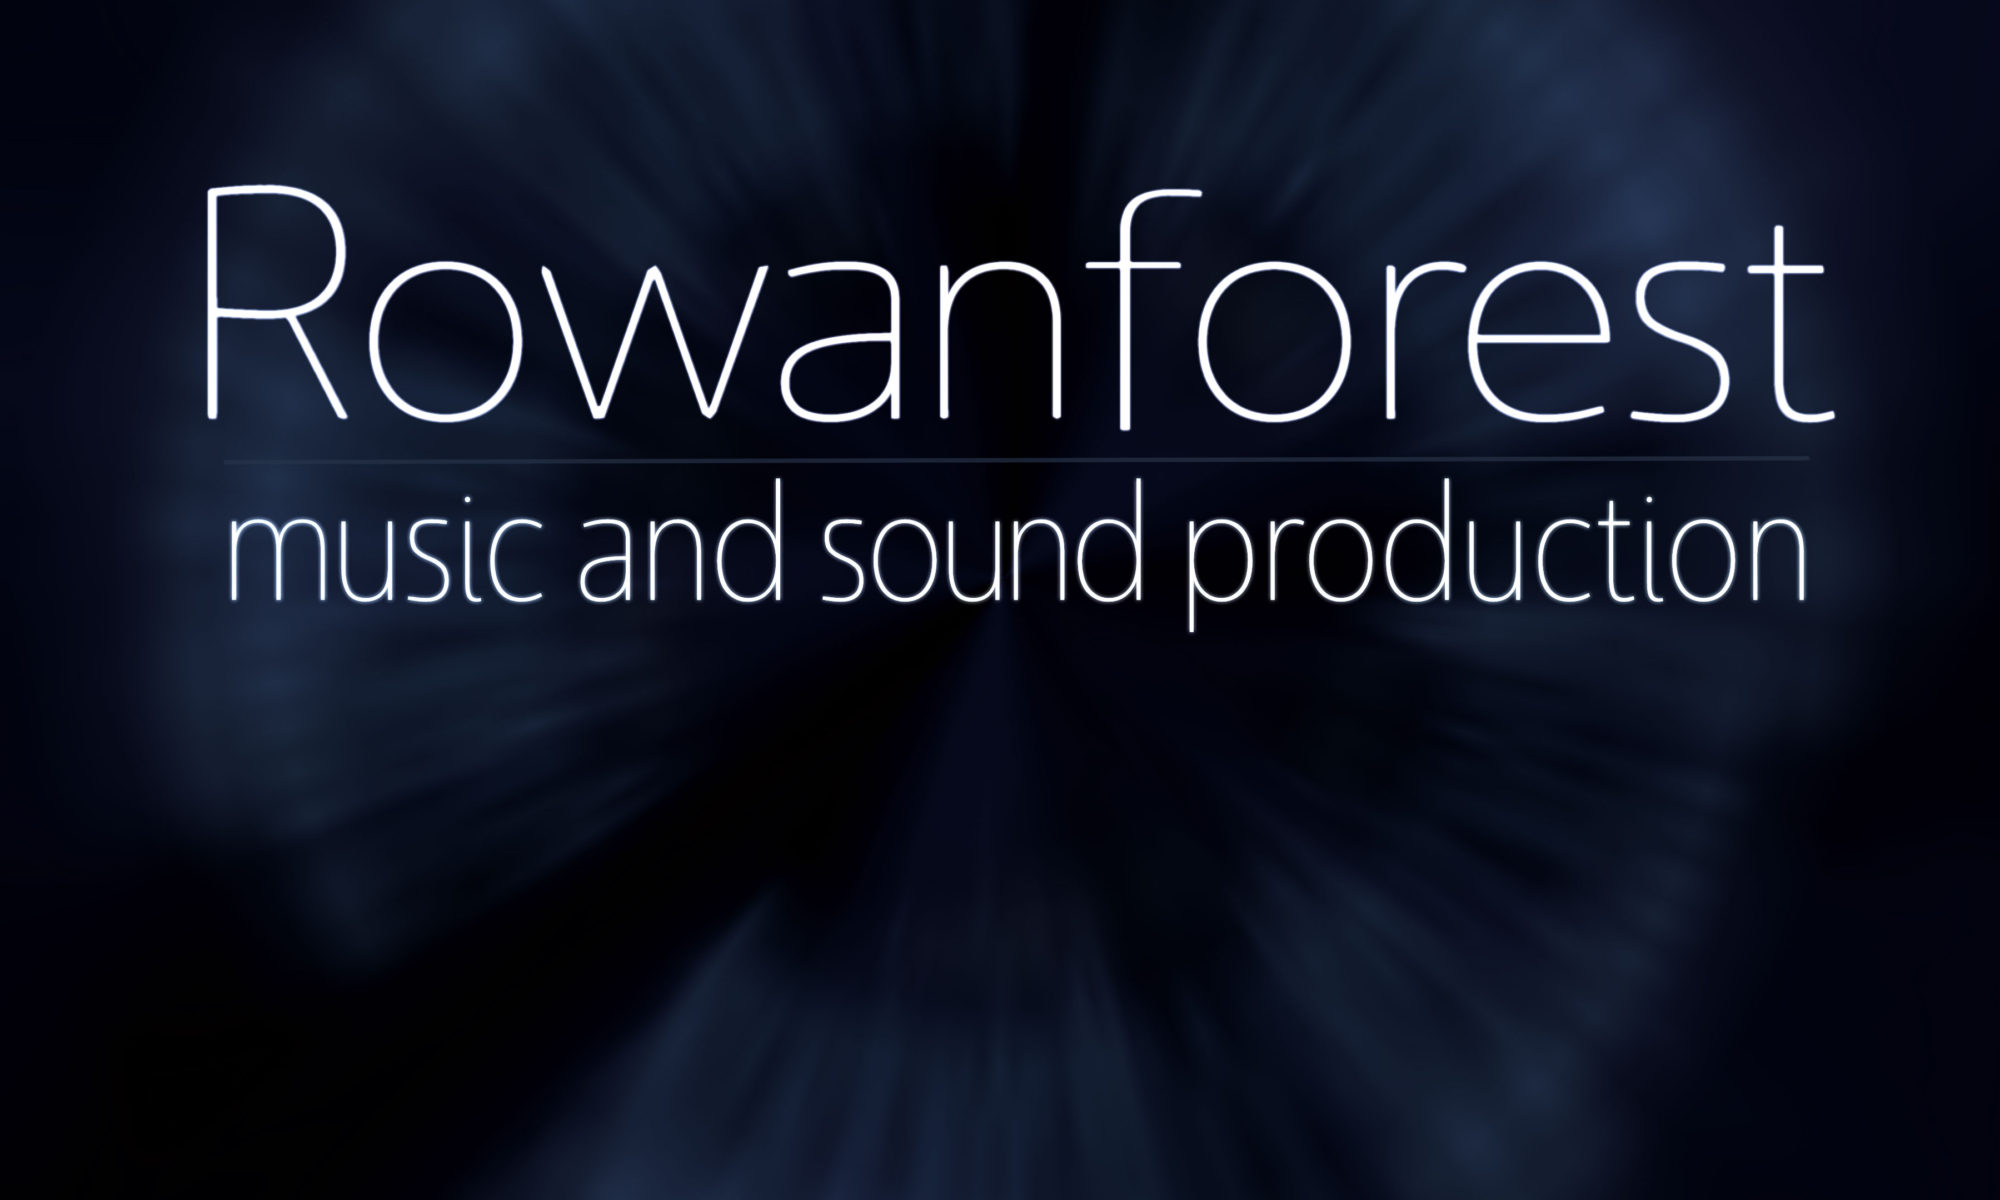 Rowanforest music and sound production